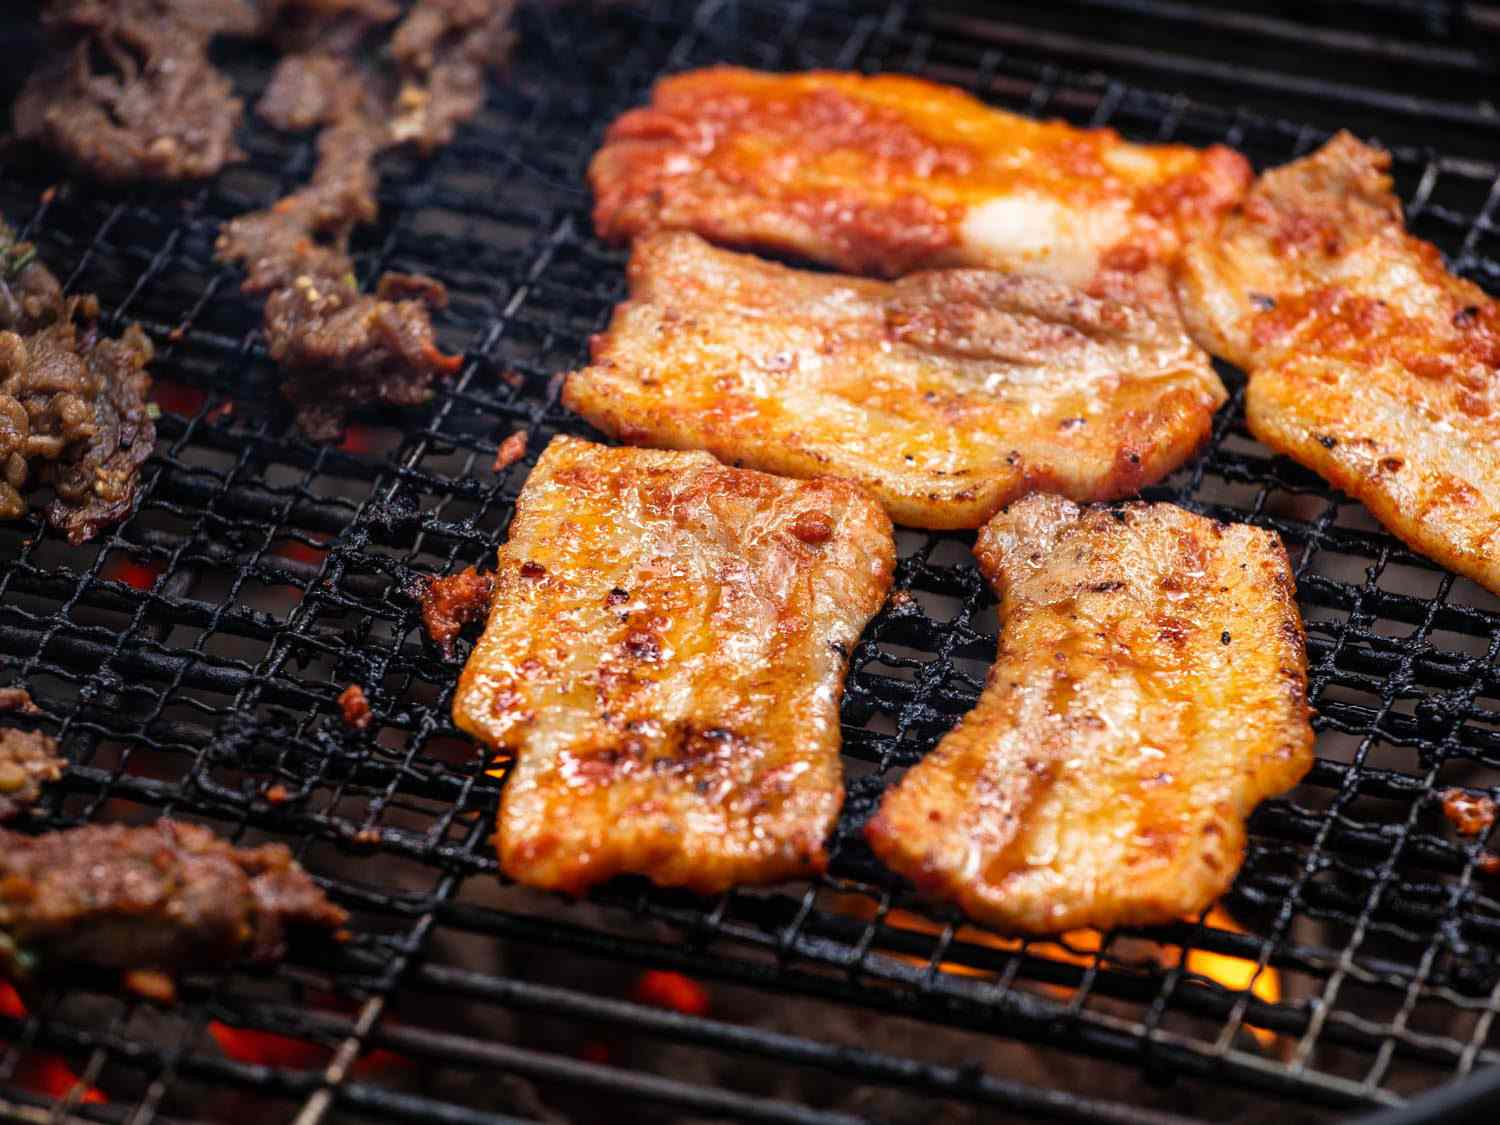 Closeup of pieces of pork belly on the grill.